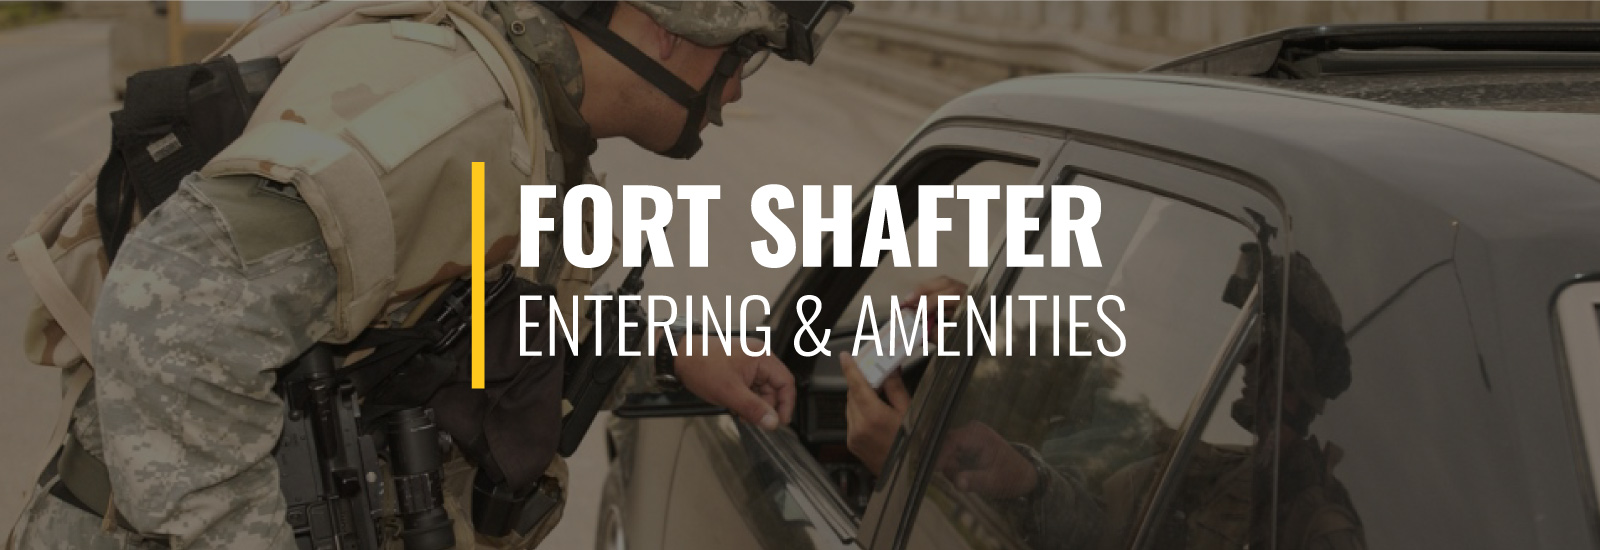 Entering Fort Shafter and Post Amenities